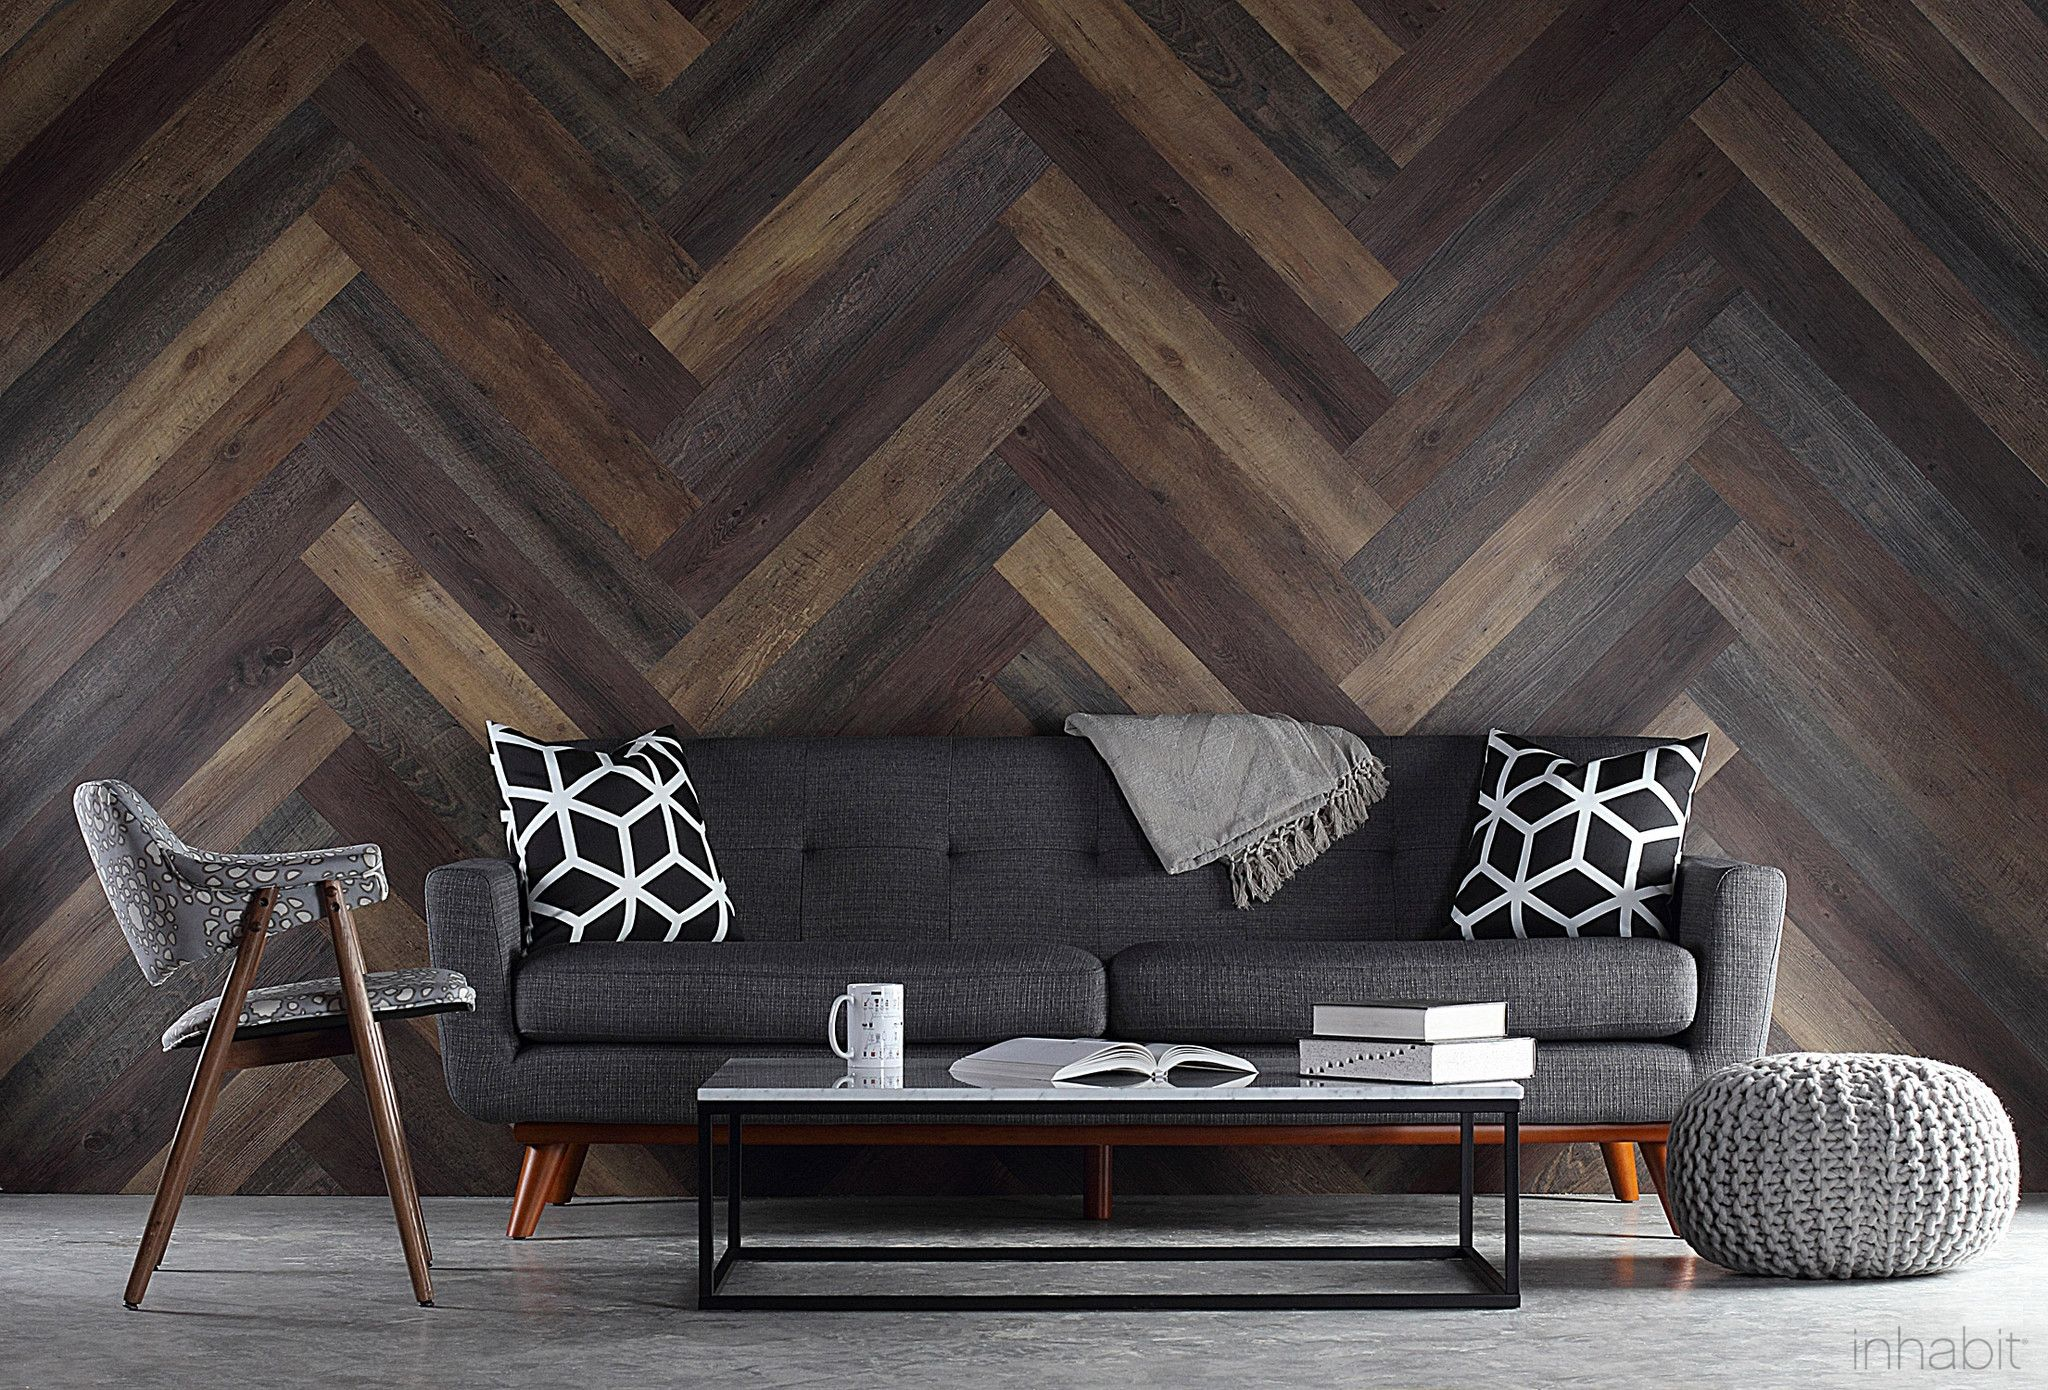 pallet wood look peel and stick wall planks pallet wood walls pallet wood and wood walls. Black Bedroom Furniture Sets. Home Design Ideas